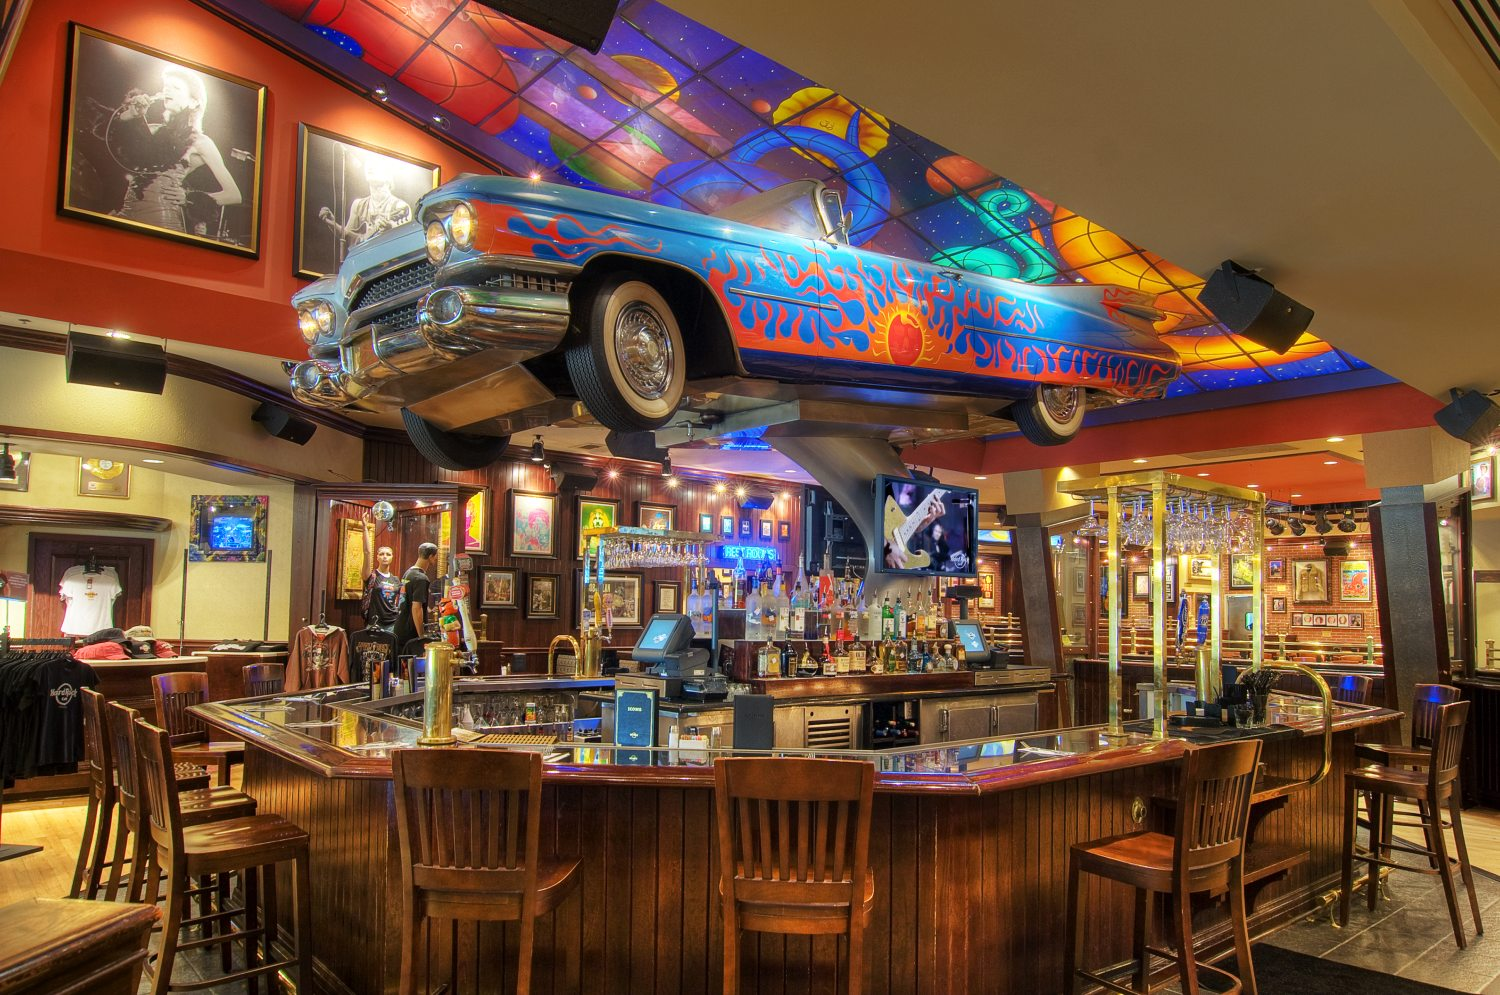 The Hard Rock Cafe in Houston, TX